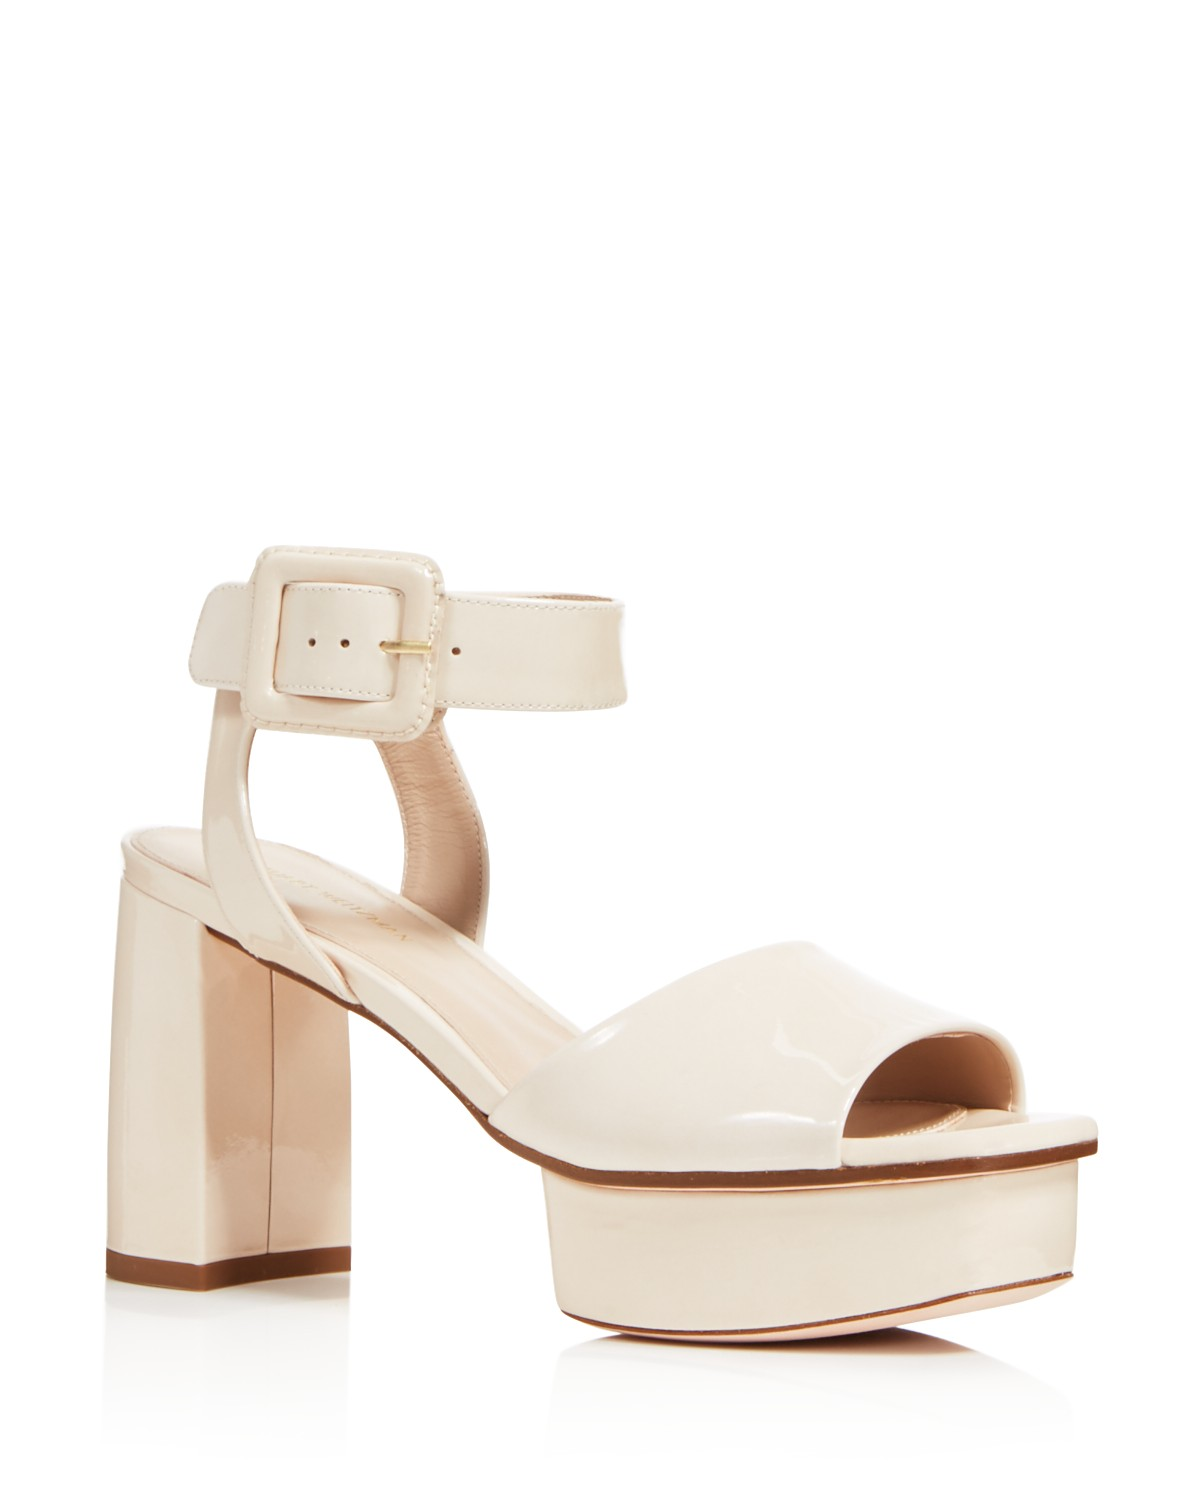 Cheap Nicekicks Stuart Weitzman New Deal sandals Geniue Stockist For Sale Find Great Sale Online qi7fihqEs5